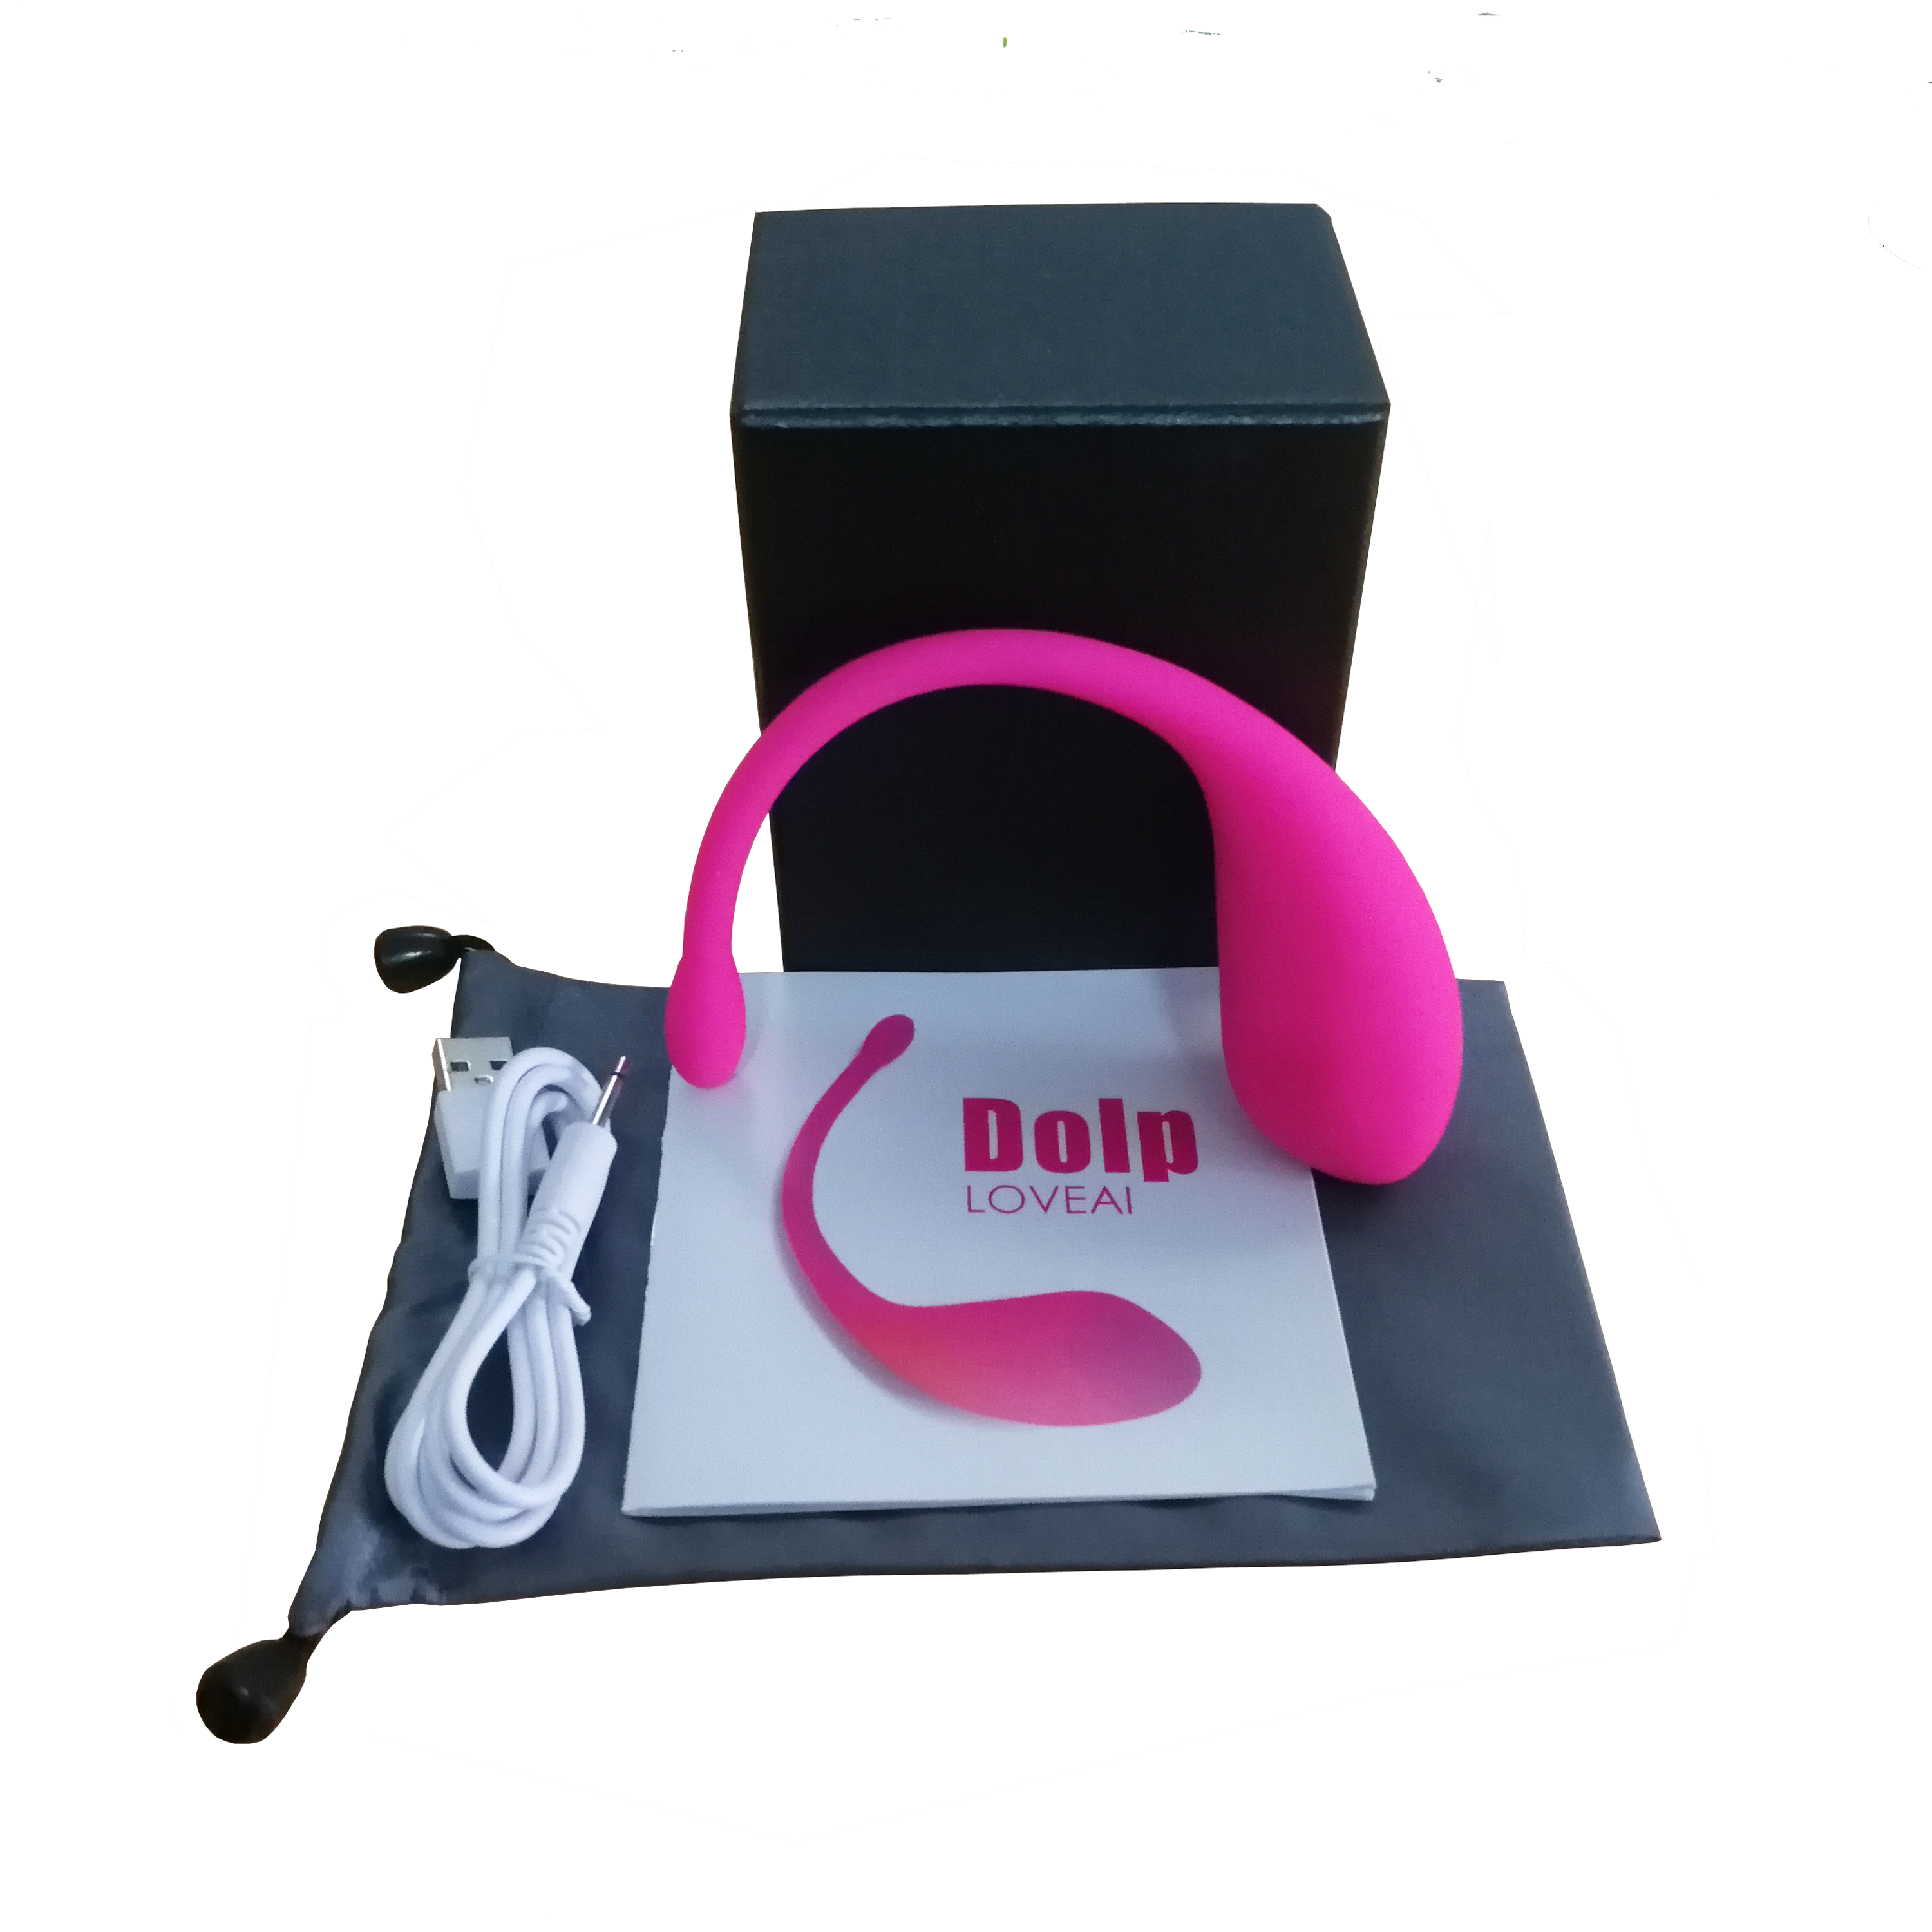 Dolp Wearable Vibrator, Smart App Lush Massager, Remote Bluetooth Control Powerful Quite Waterproof Massaging Tool For Woman